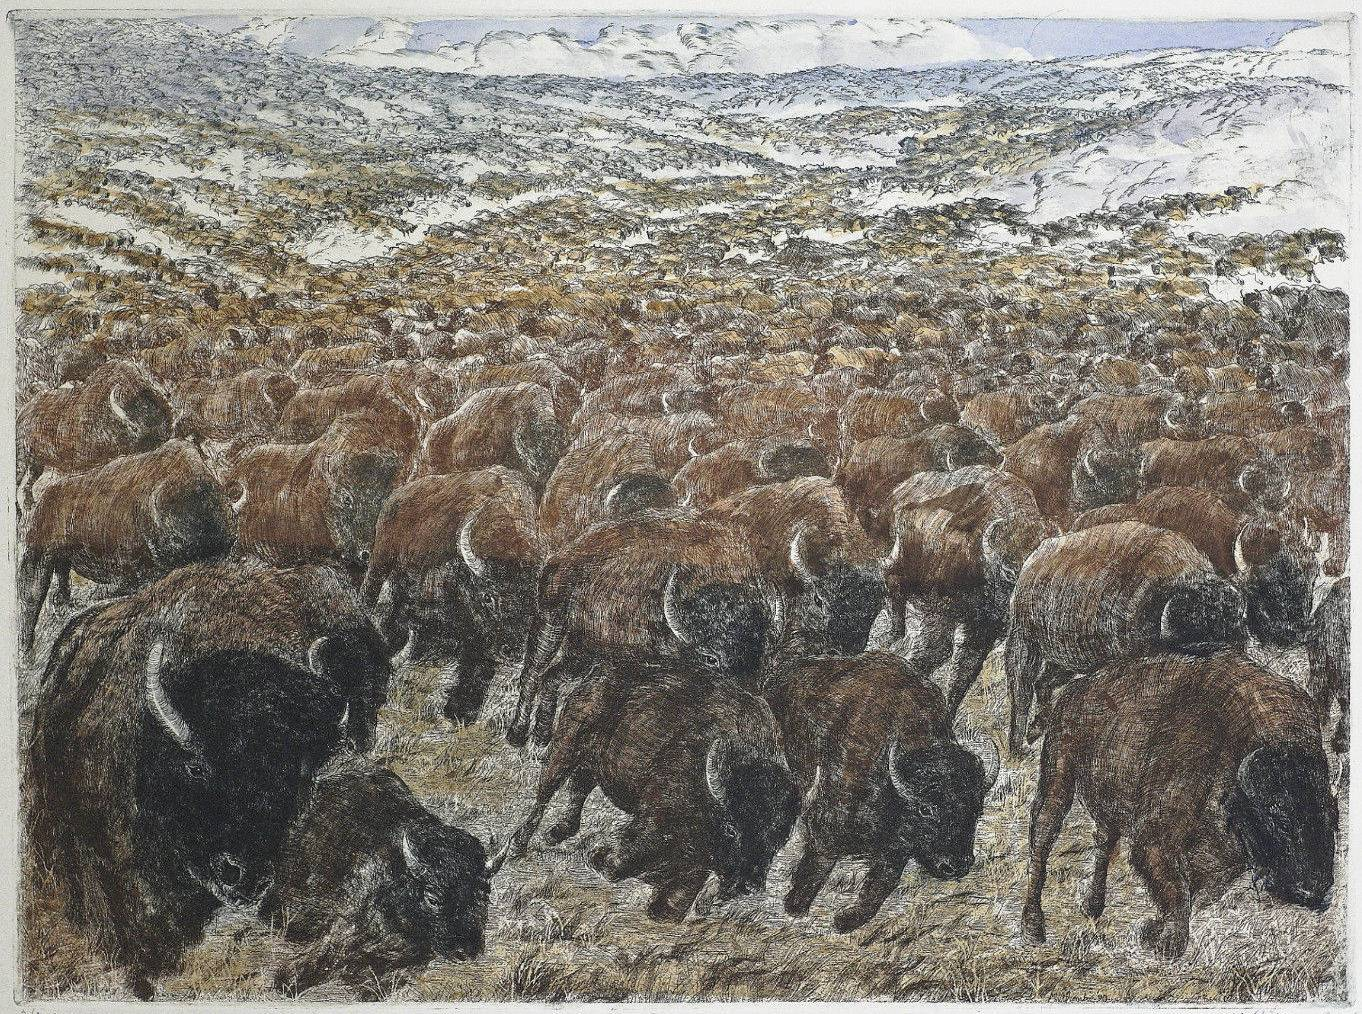 Cry Of The Bison